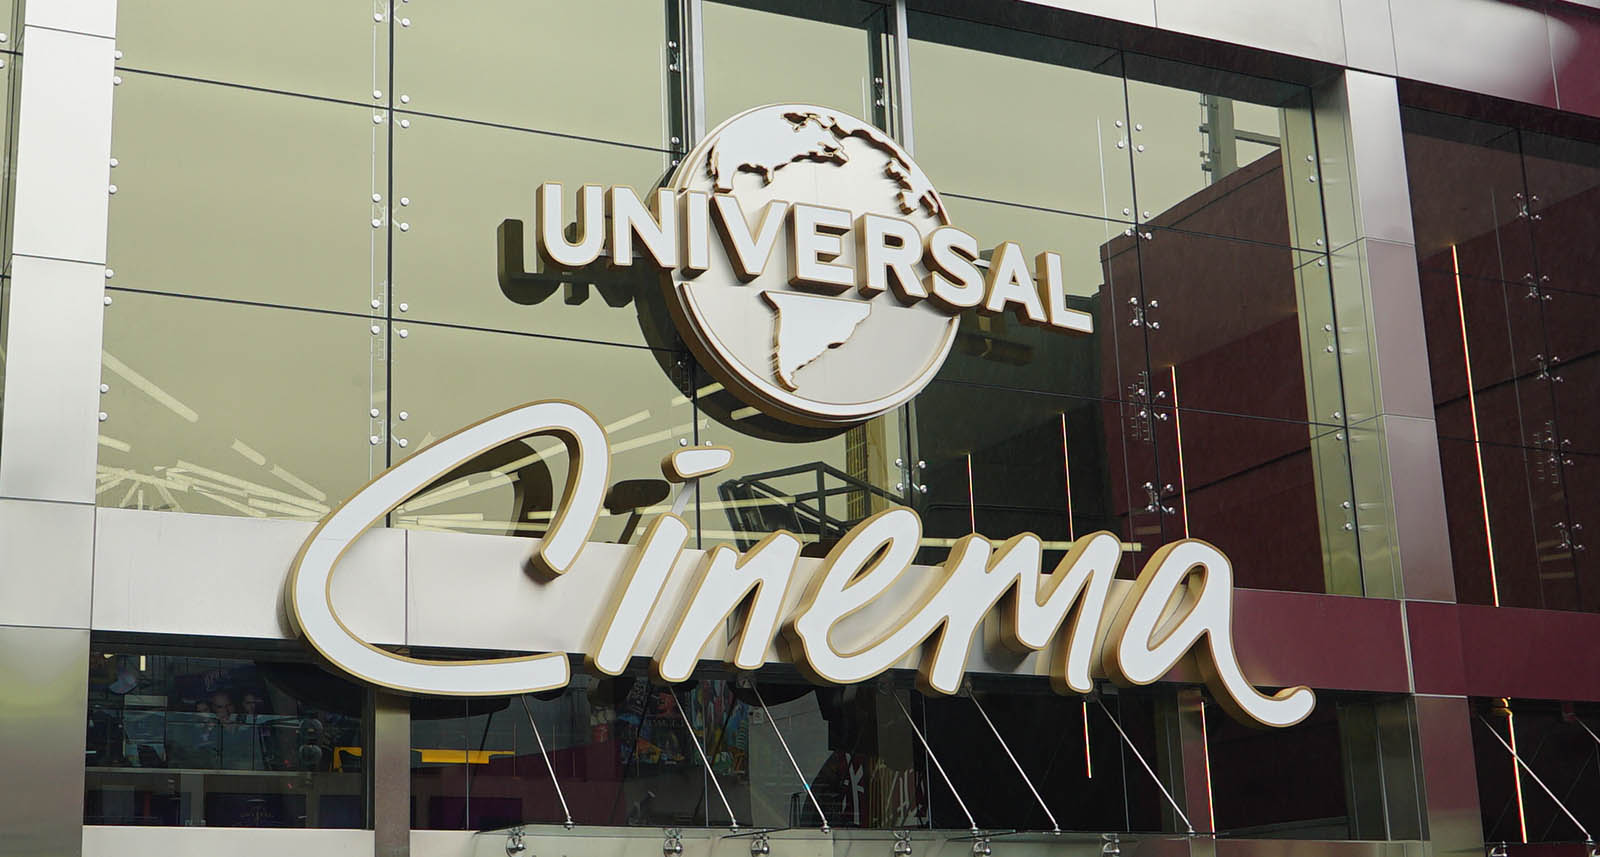 the new universal cinema at citywalk hollywood inside universal